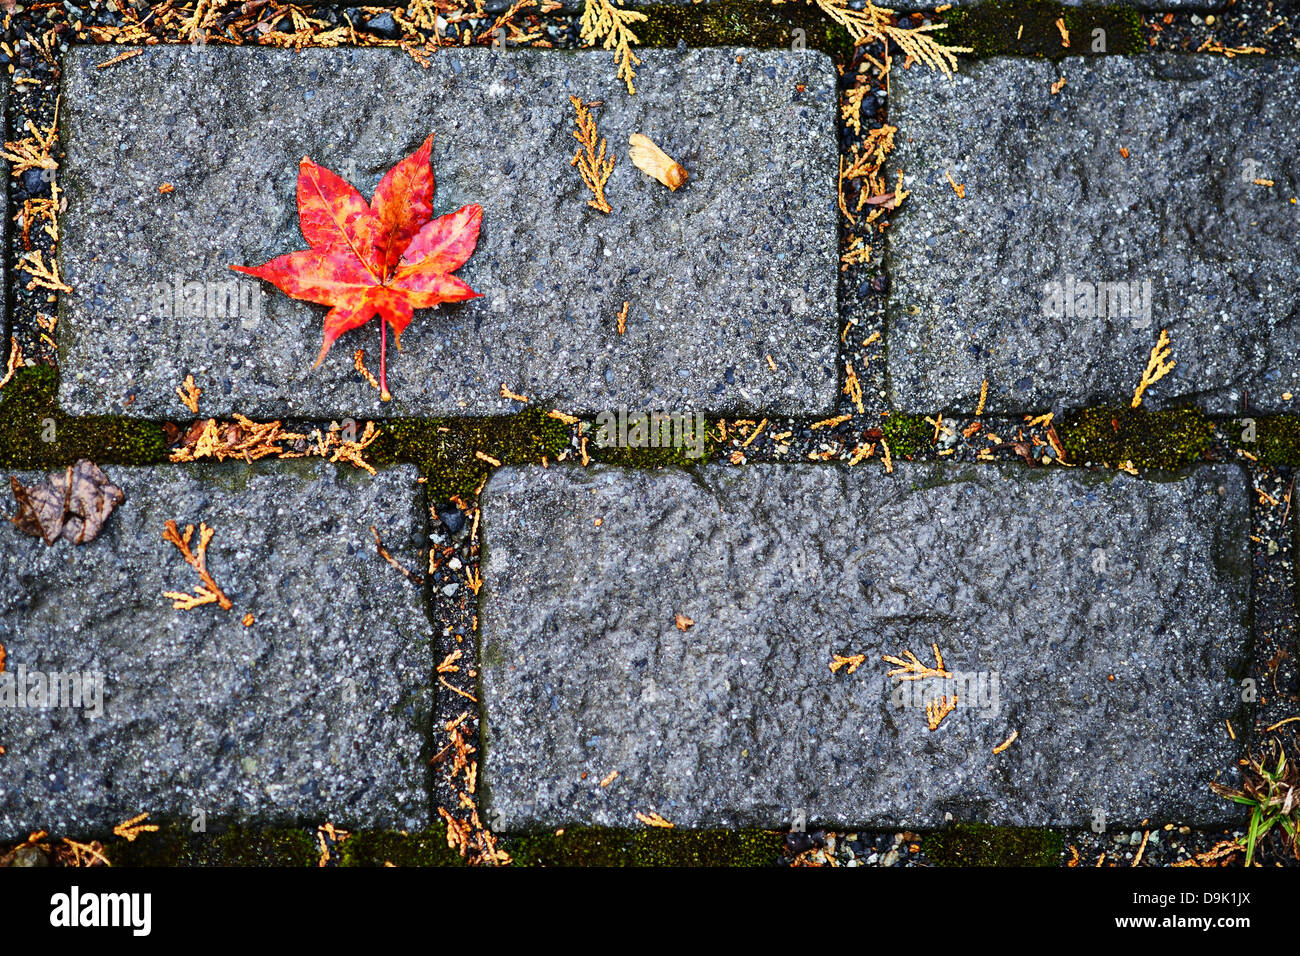 Fall leaf fallen on the floor - Stock Image